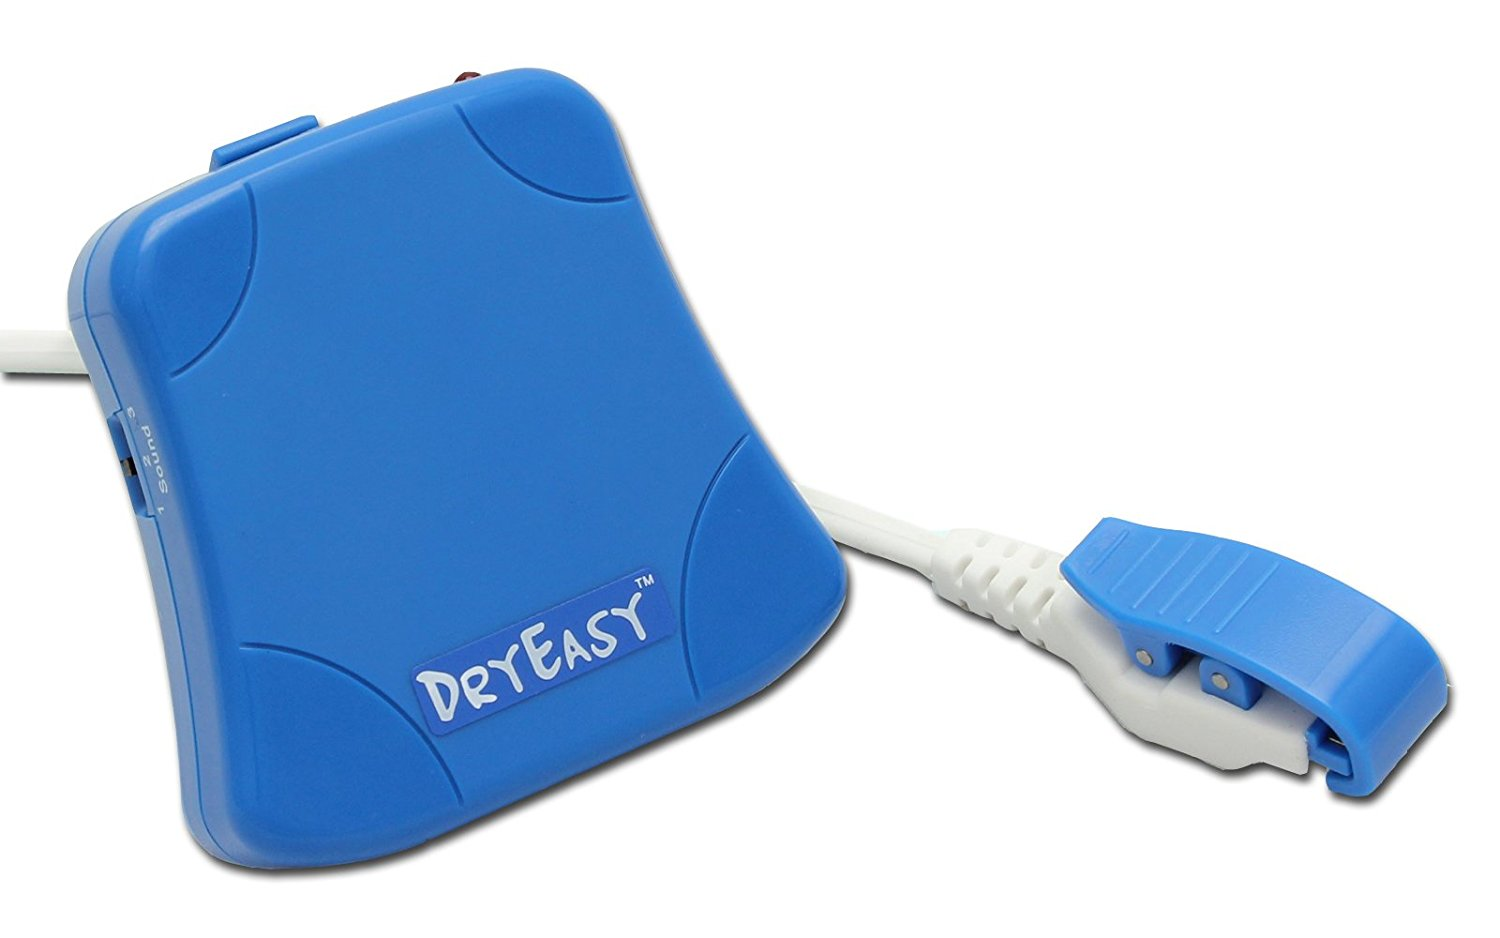 DryEasy Selectable Bedwetting Alarm